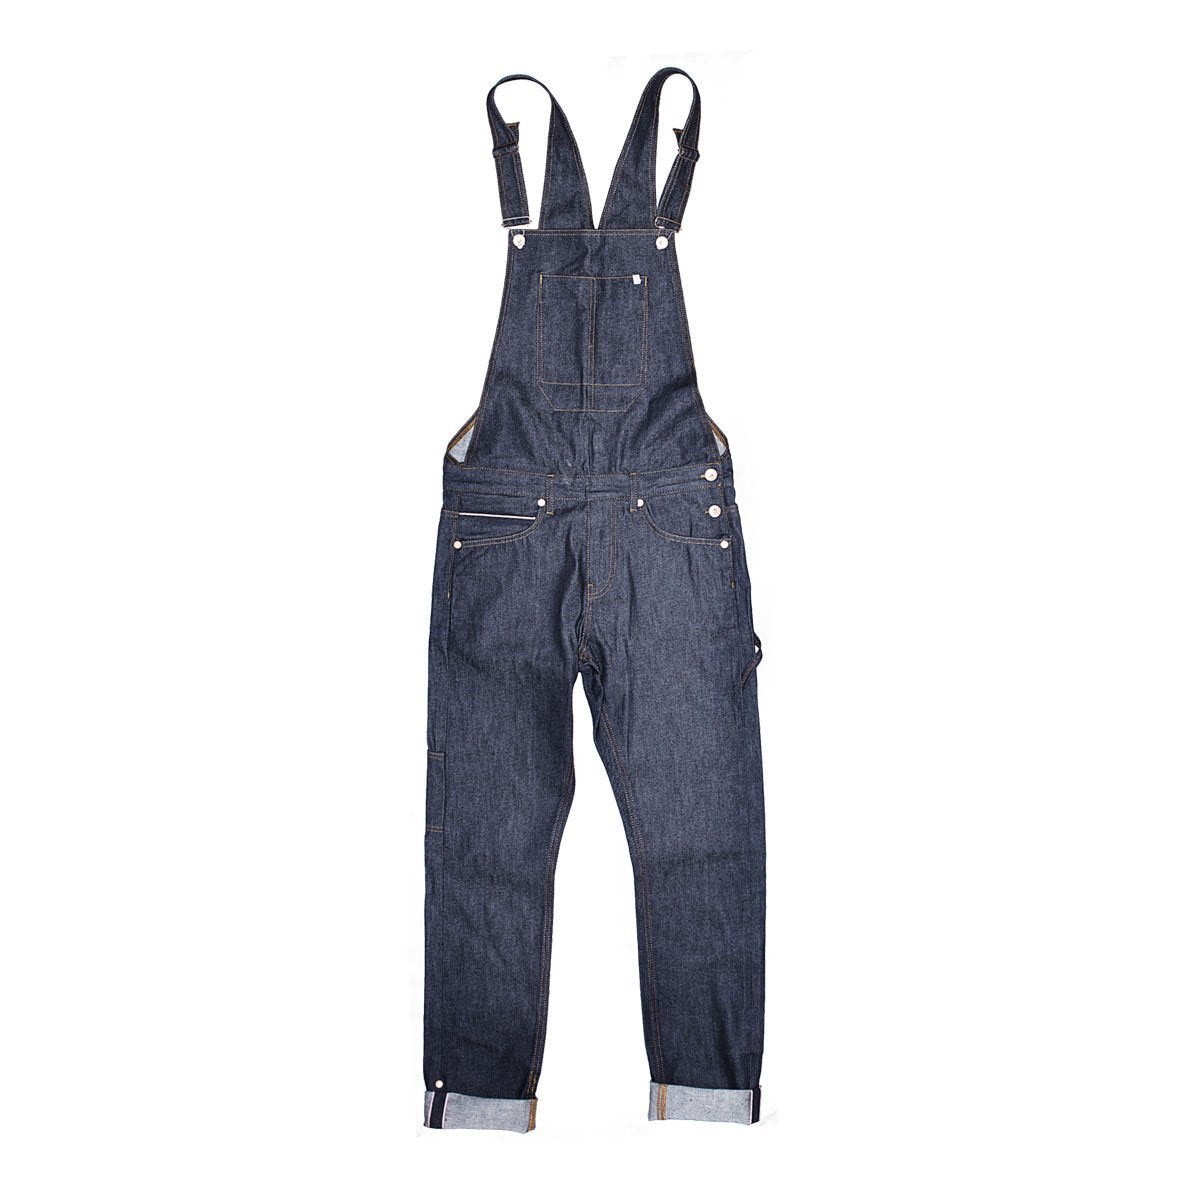 &SONS | Women's Union Overalls | Heavyweight 13 oz Selvedge Denim